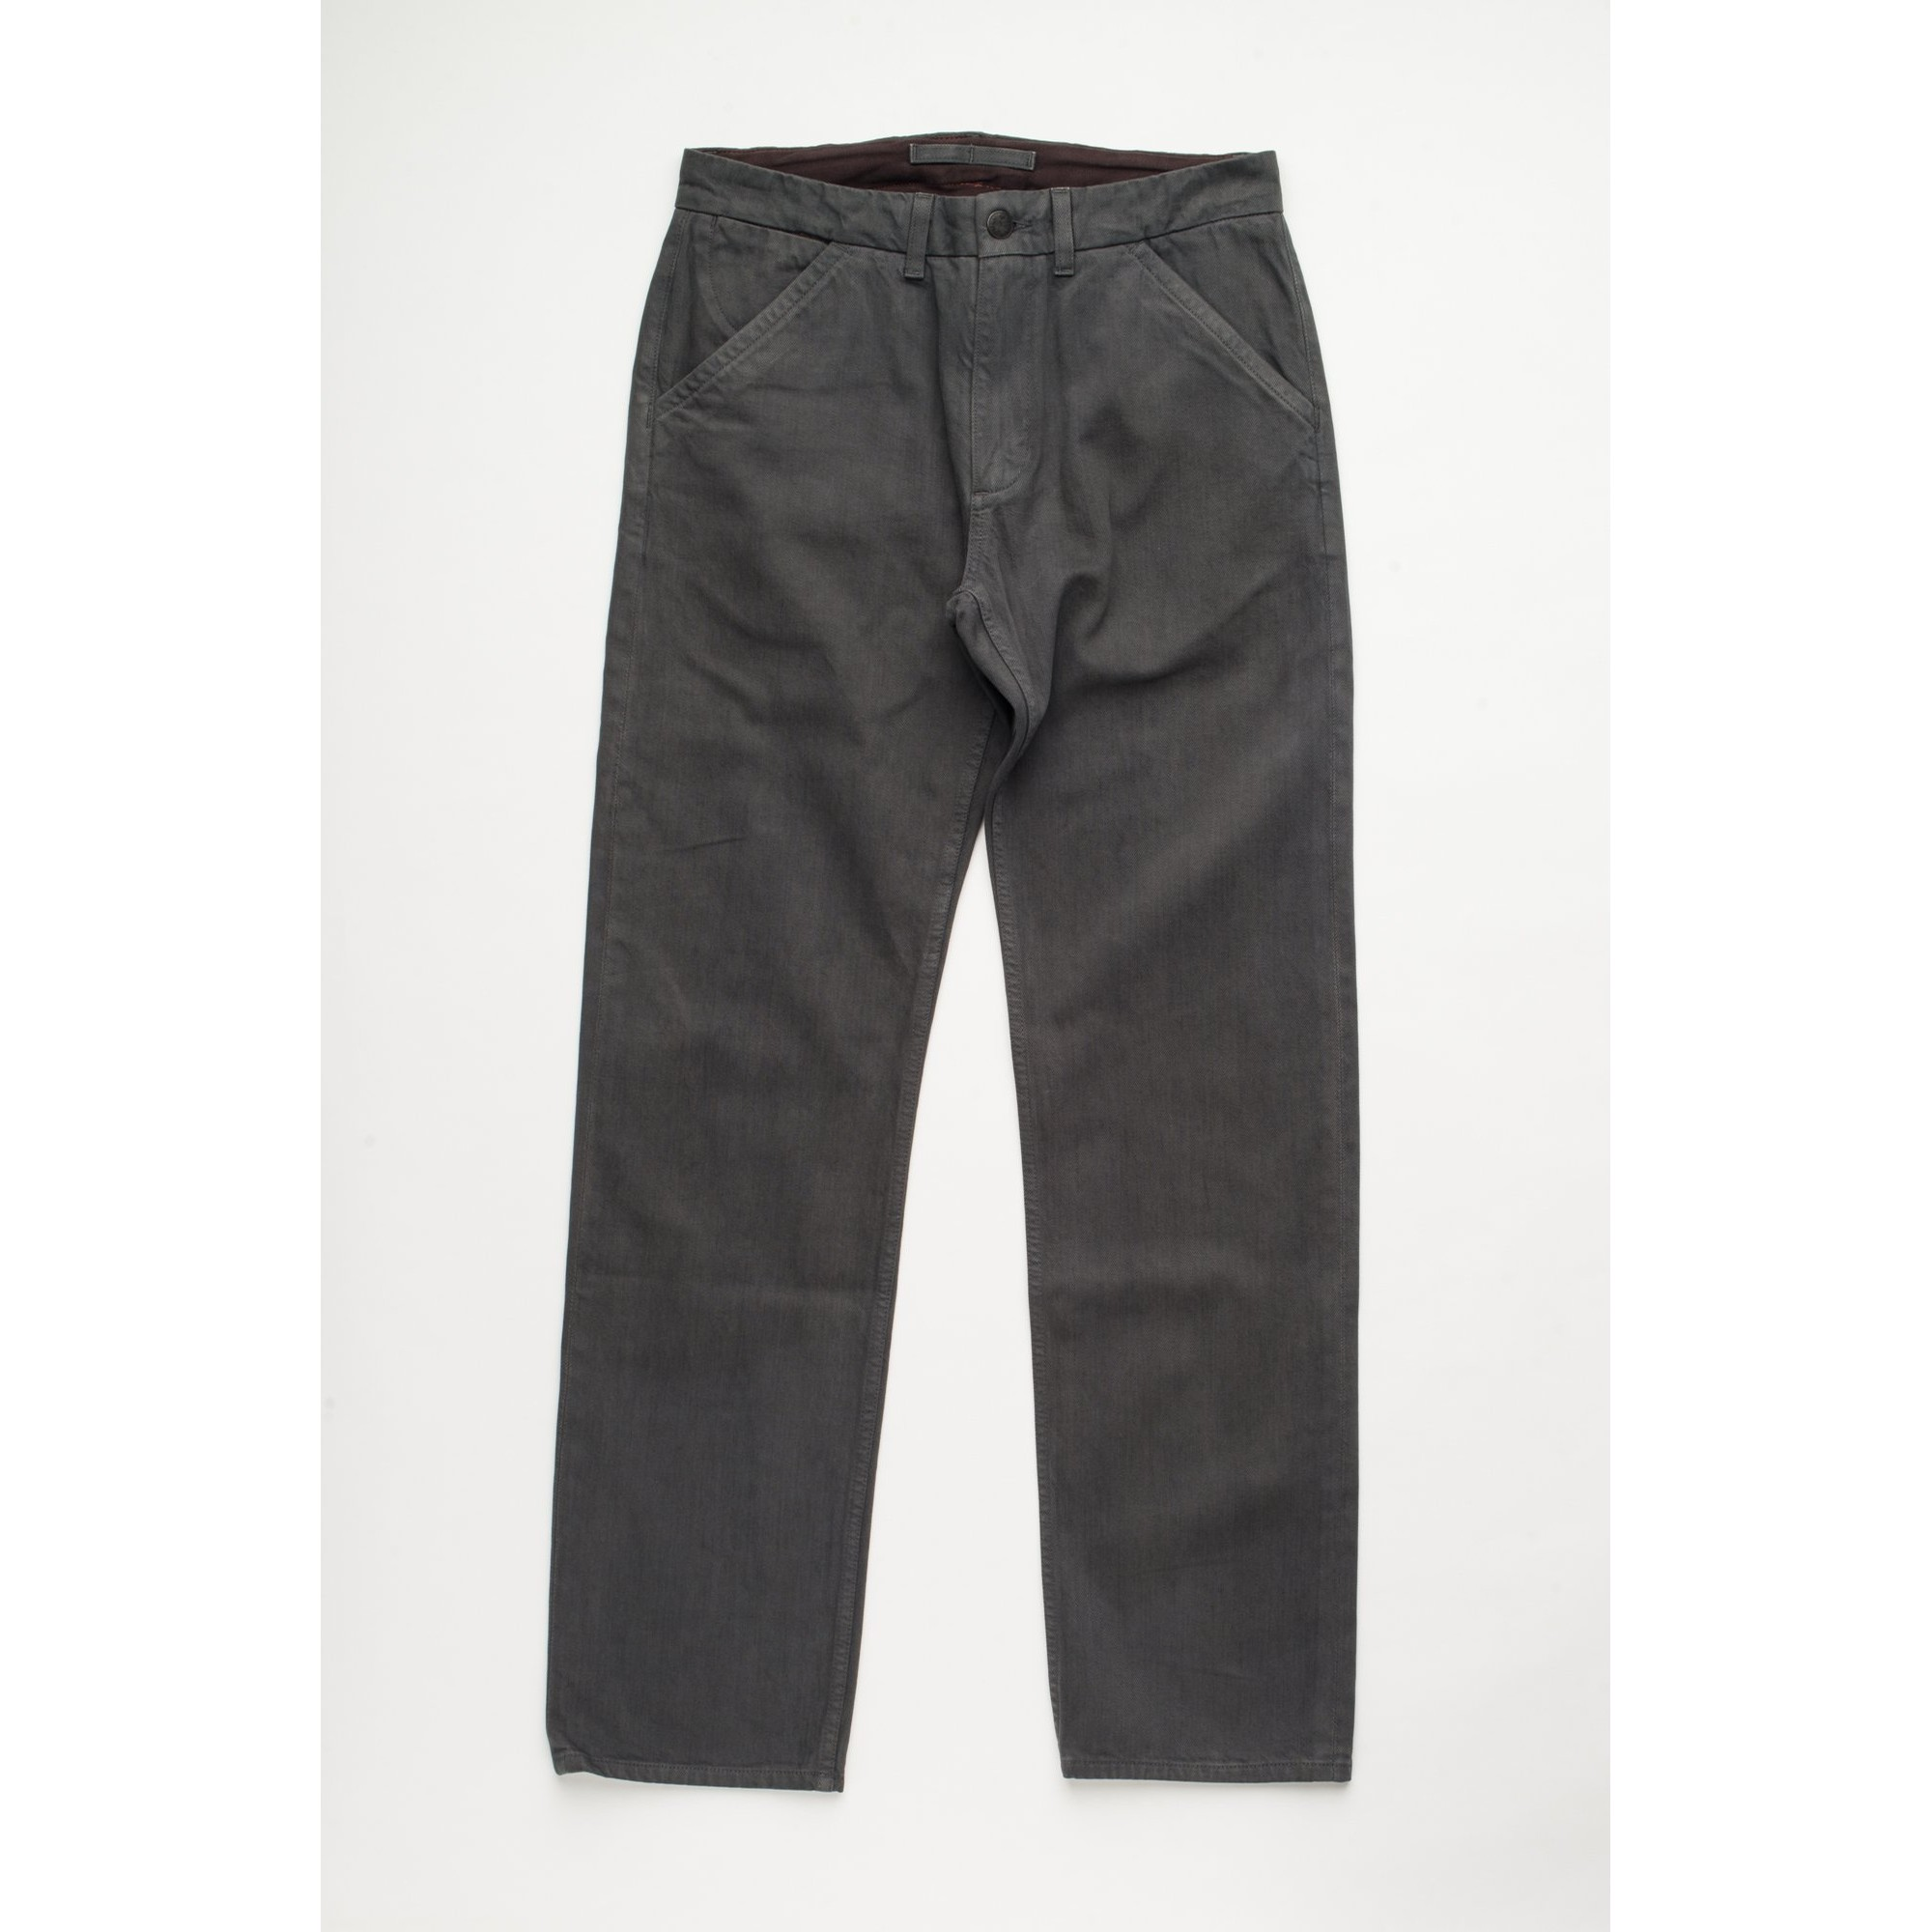 Workers Classic Fit Chino: Charcoal